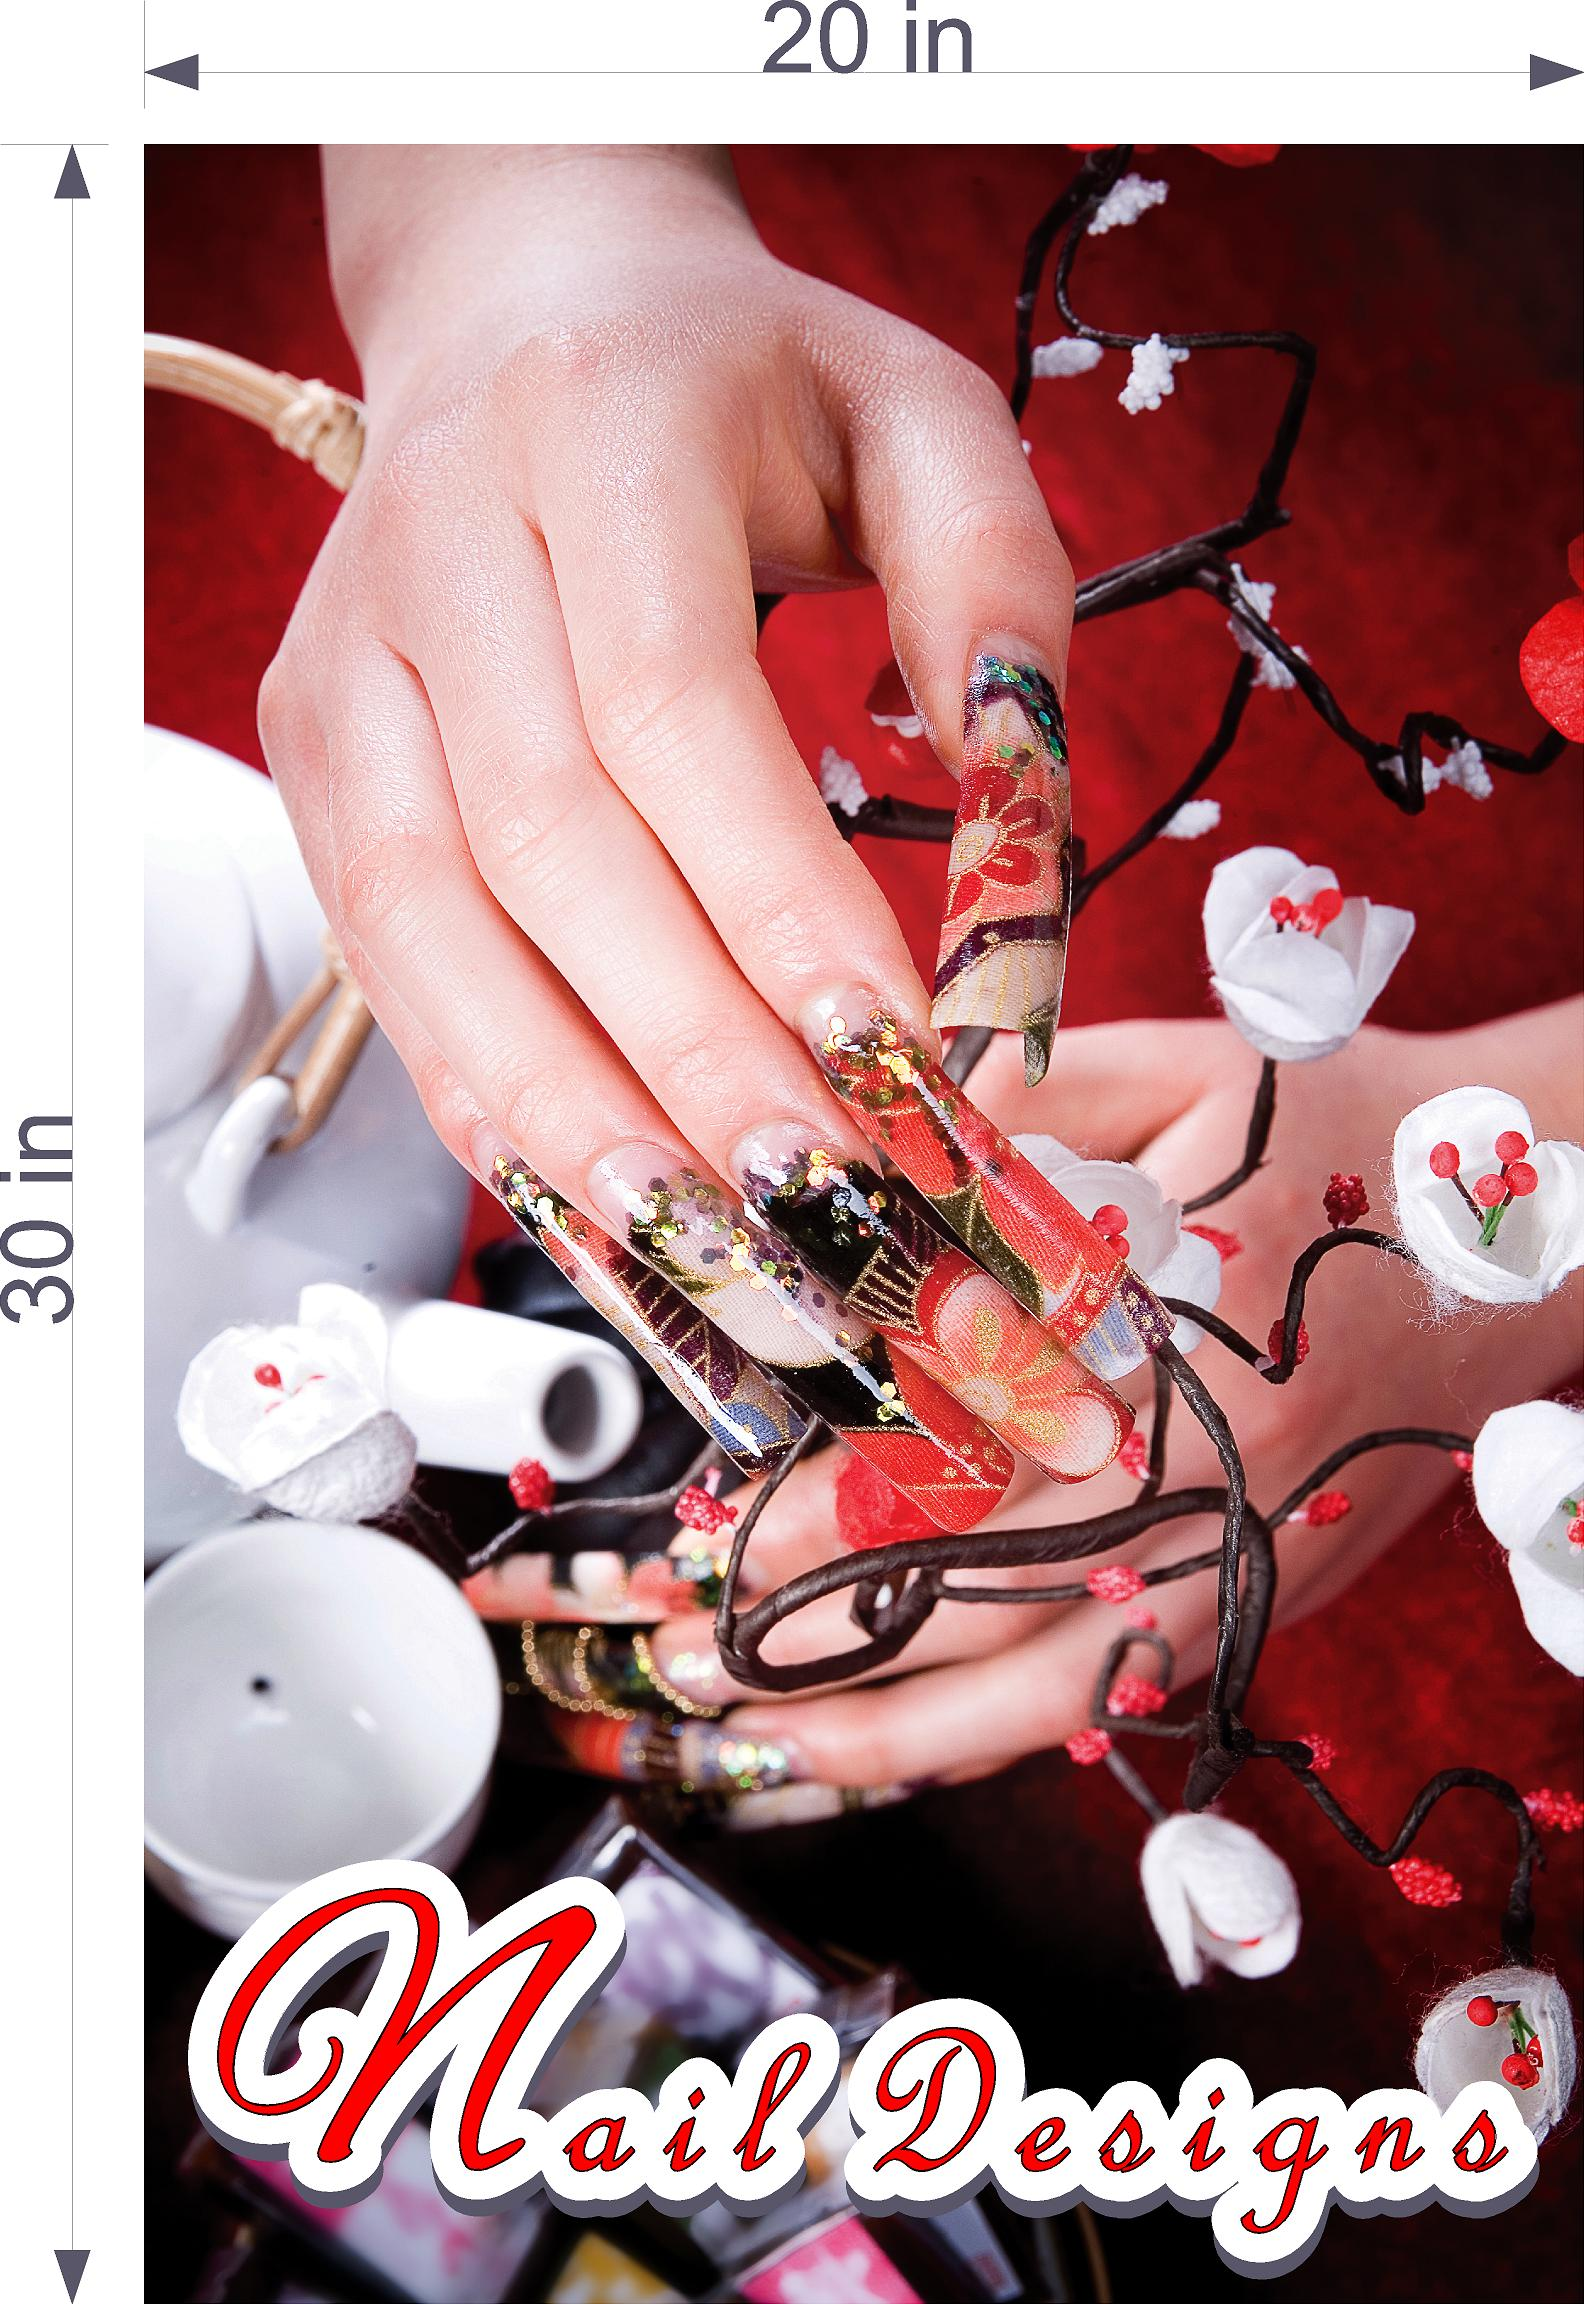 Nail Designs 05 Photo-Realistic Paper Poster Premium Matte Interior Inside Sign Advertising Marketing Wall Window Non-Laminated Vertical